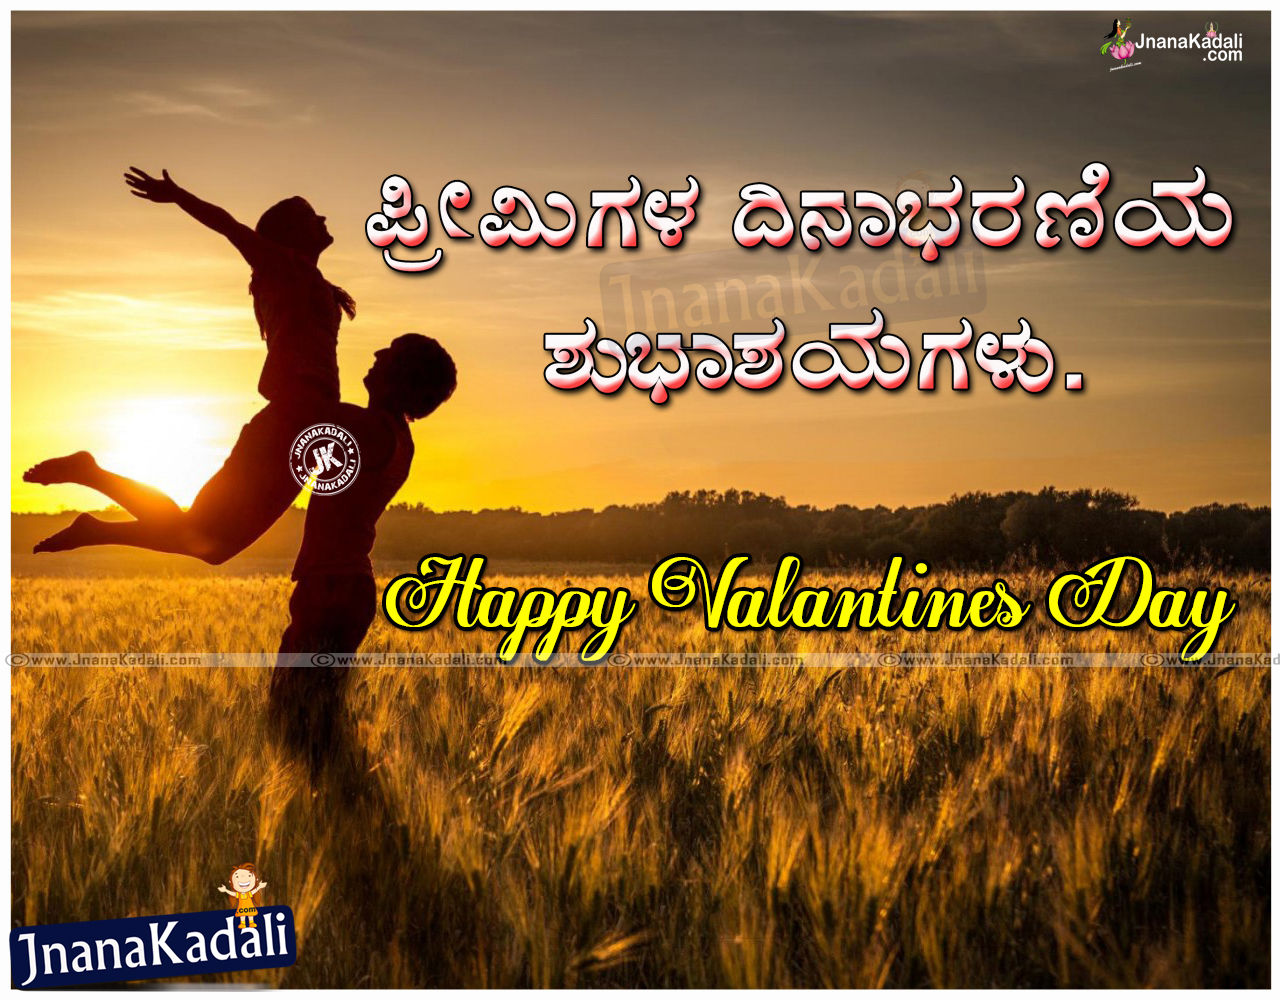 Kannada Valentines Day Shubhashaya Hd Wallpapers Jnana Kadali